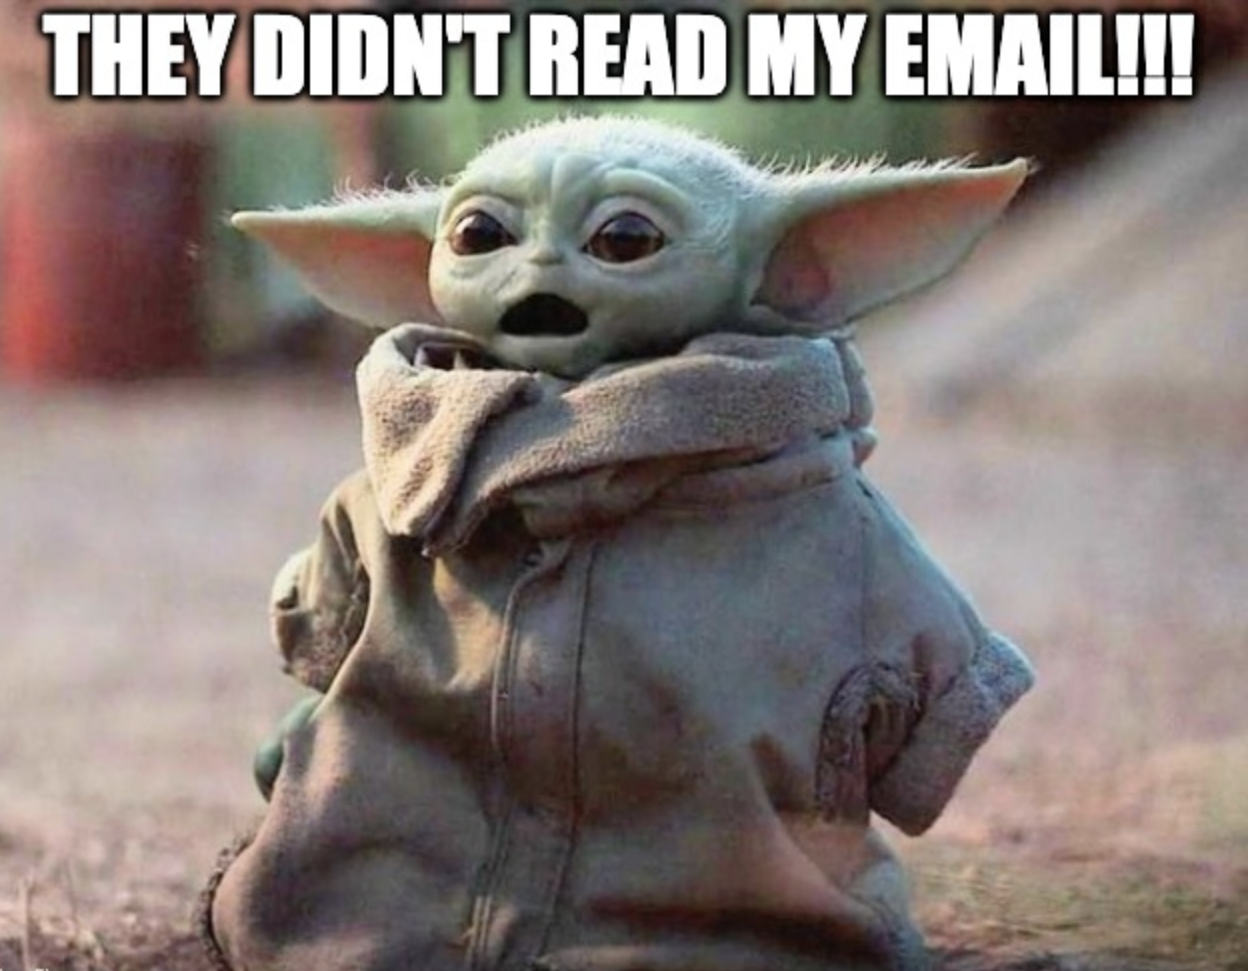 Humor about cold email trash